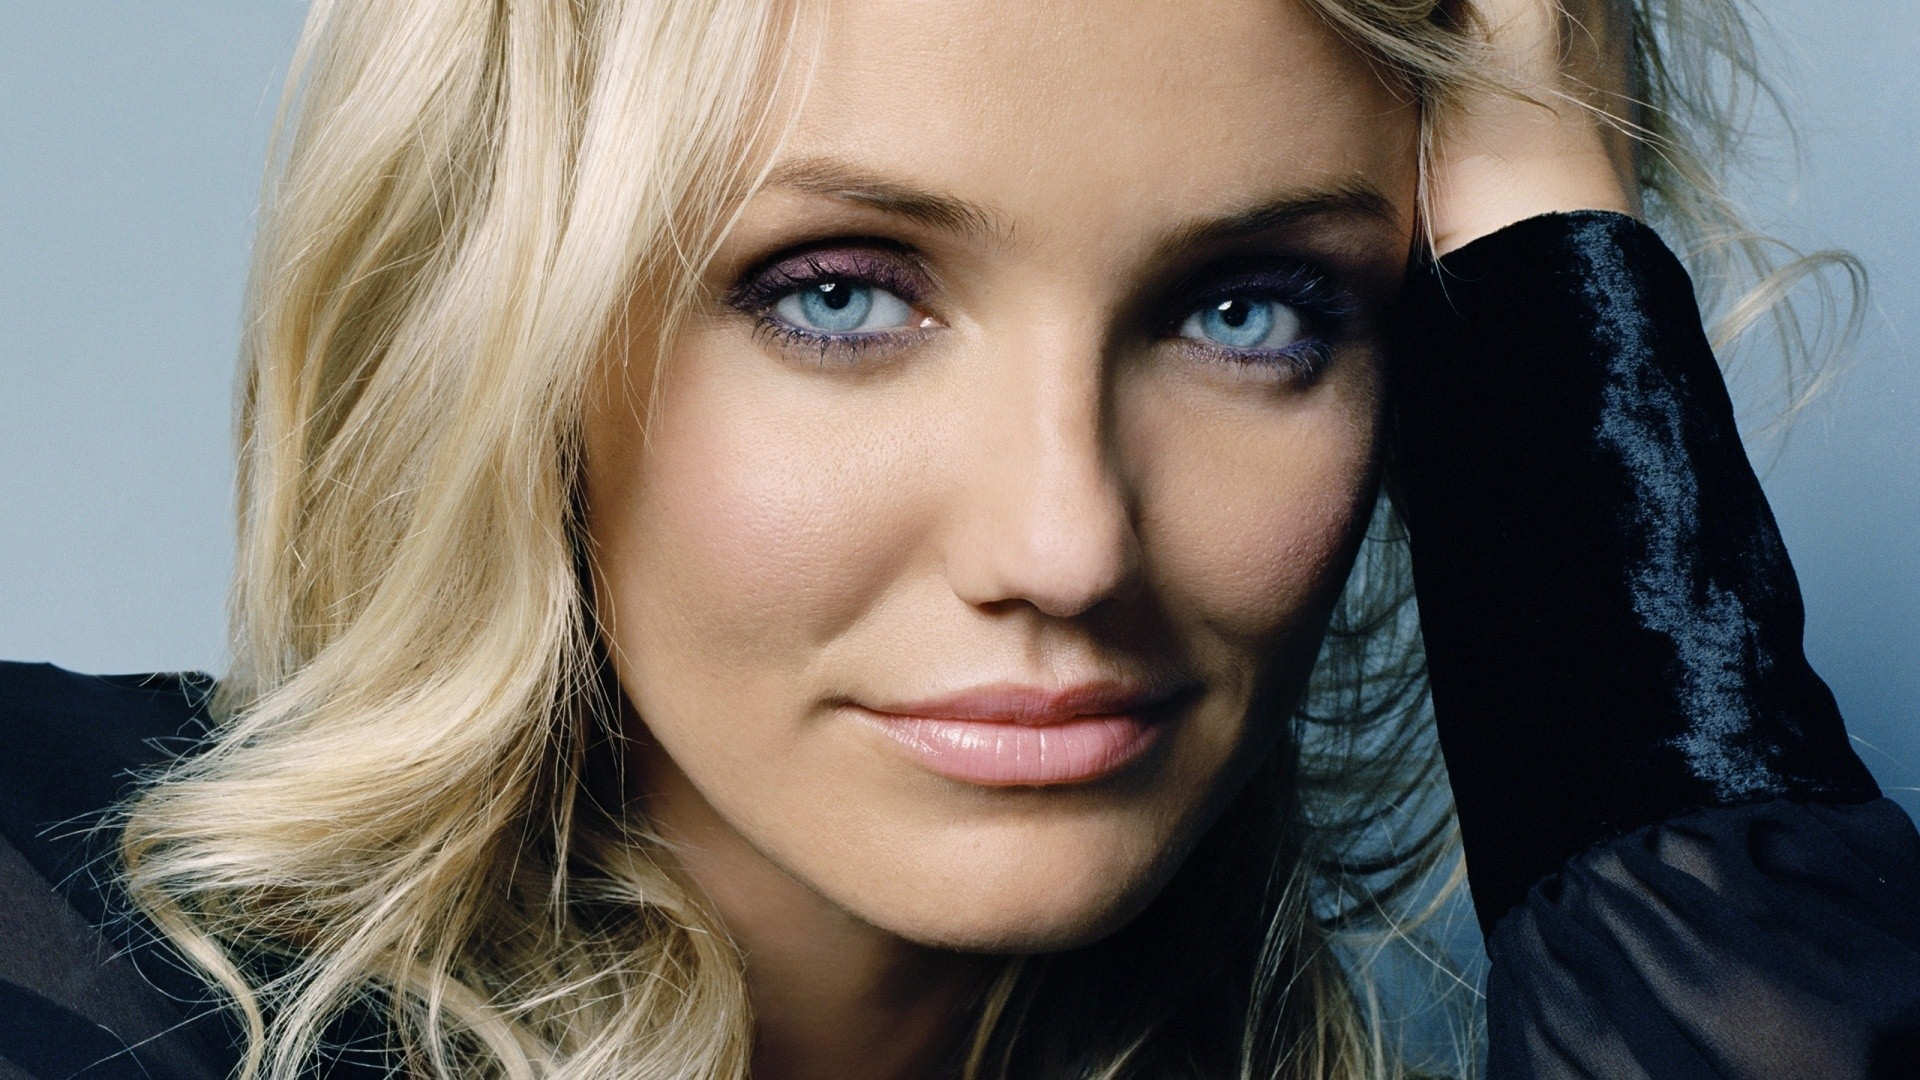 Cameron Diaz Hollywood Actress Actress HD Wallpapers 1920x1080